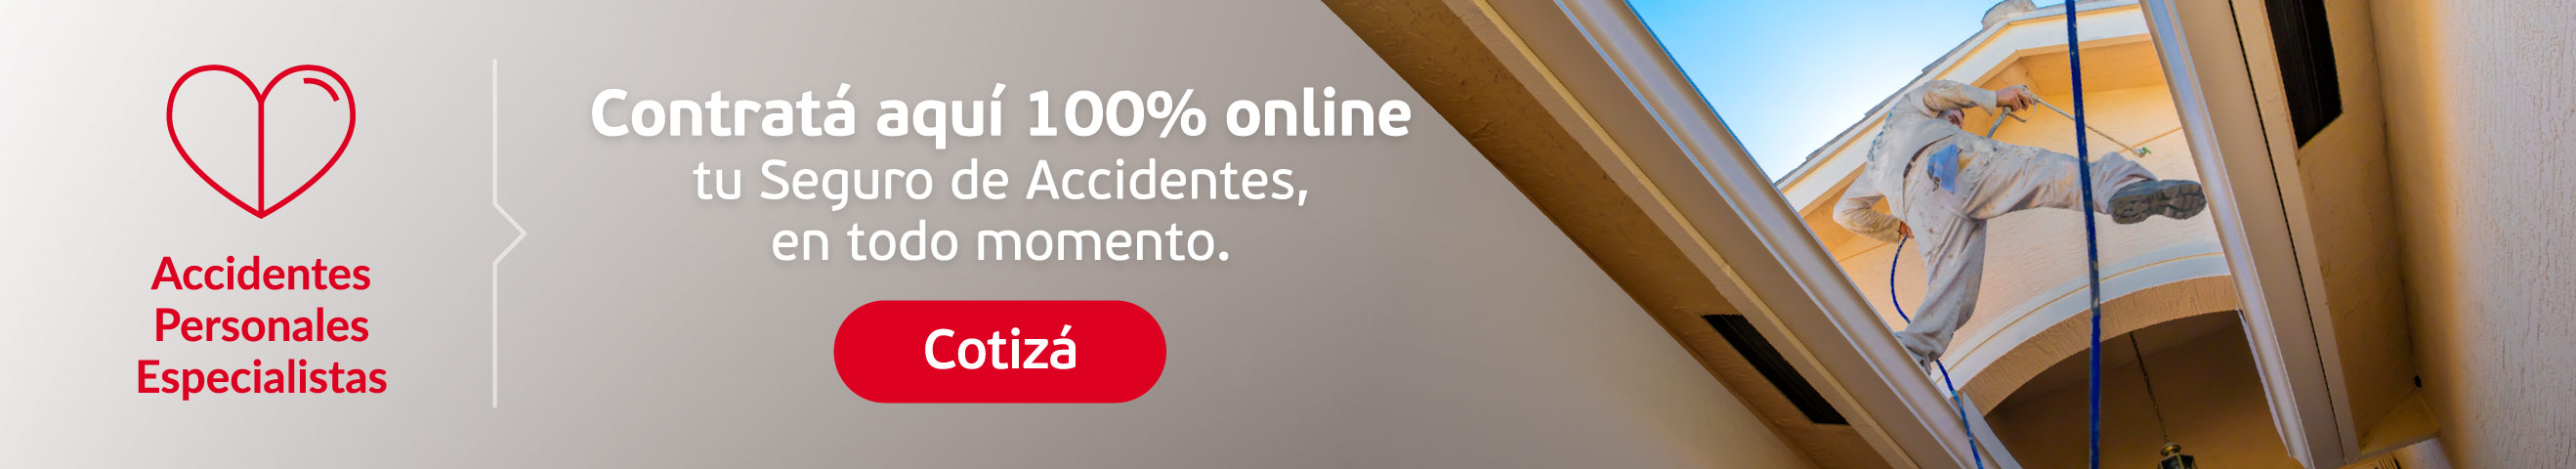 Seguro de accidentes de especialistas